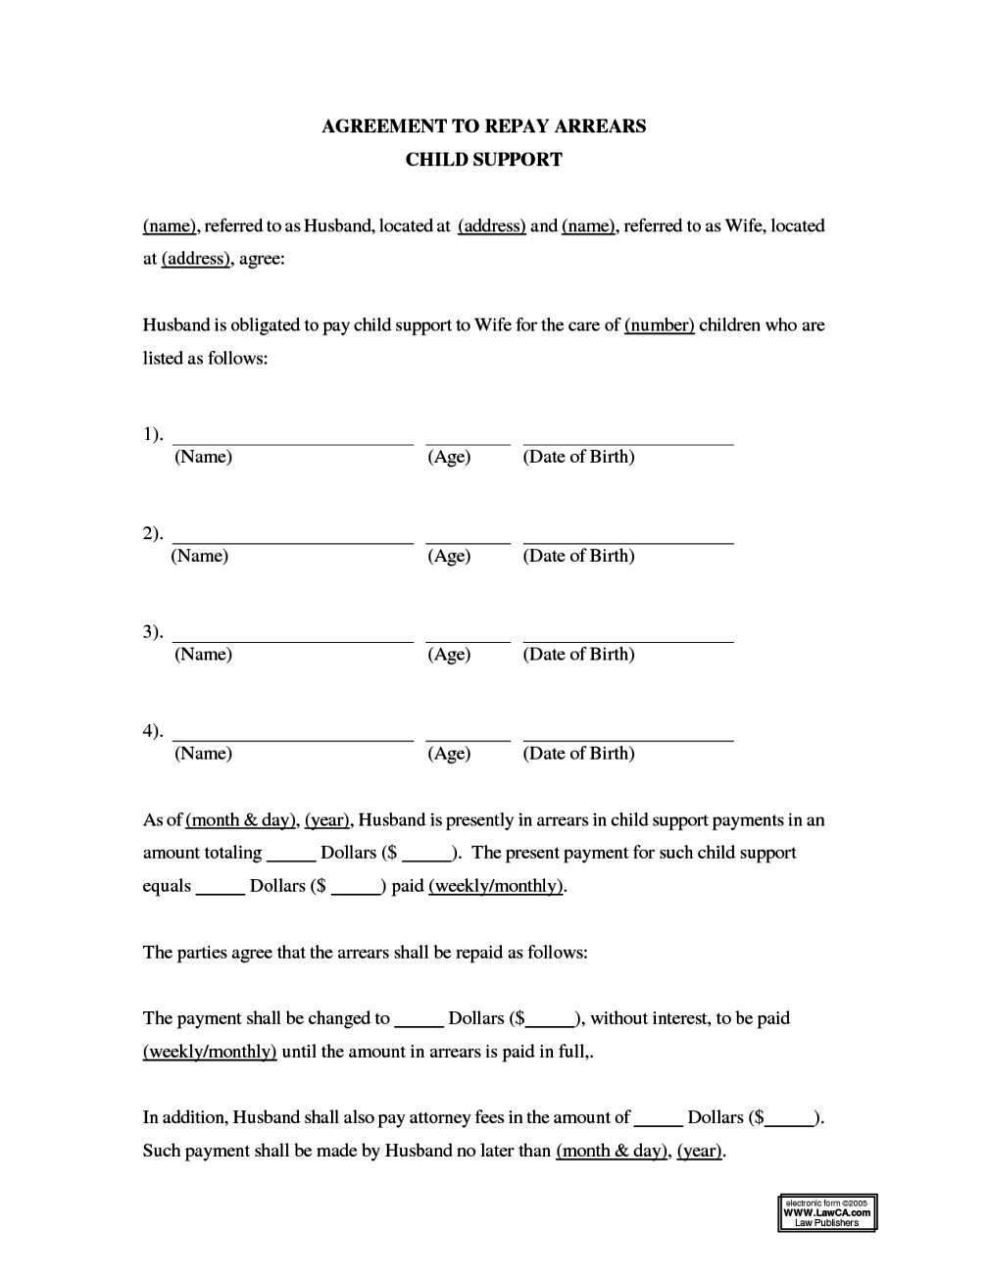 Child Support Agreement Template Child Support Payment Agreement Template